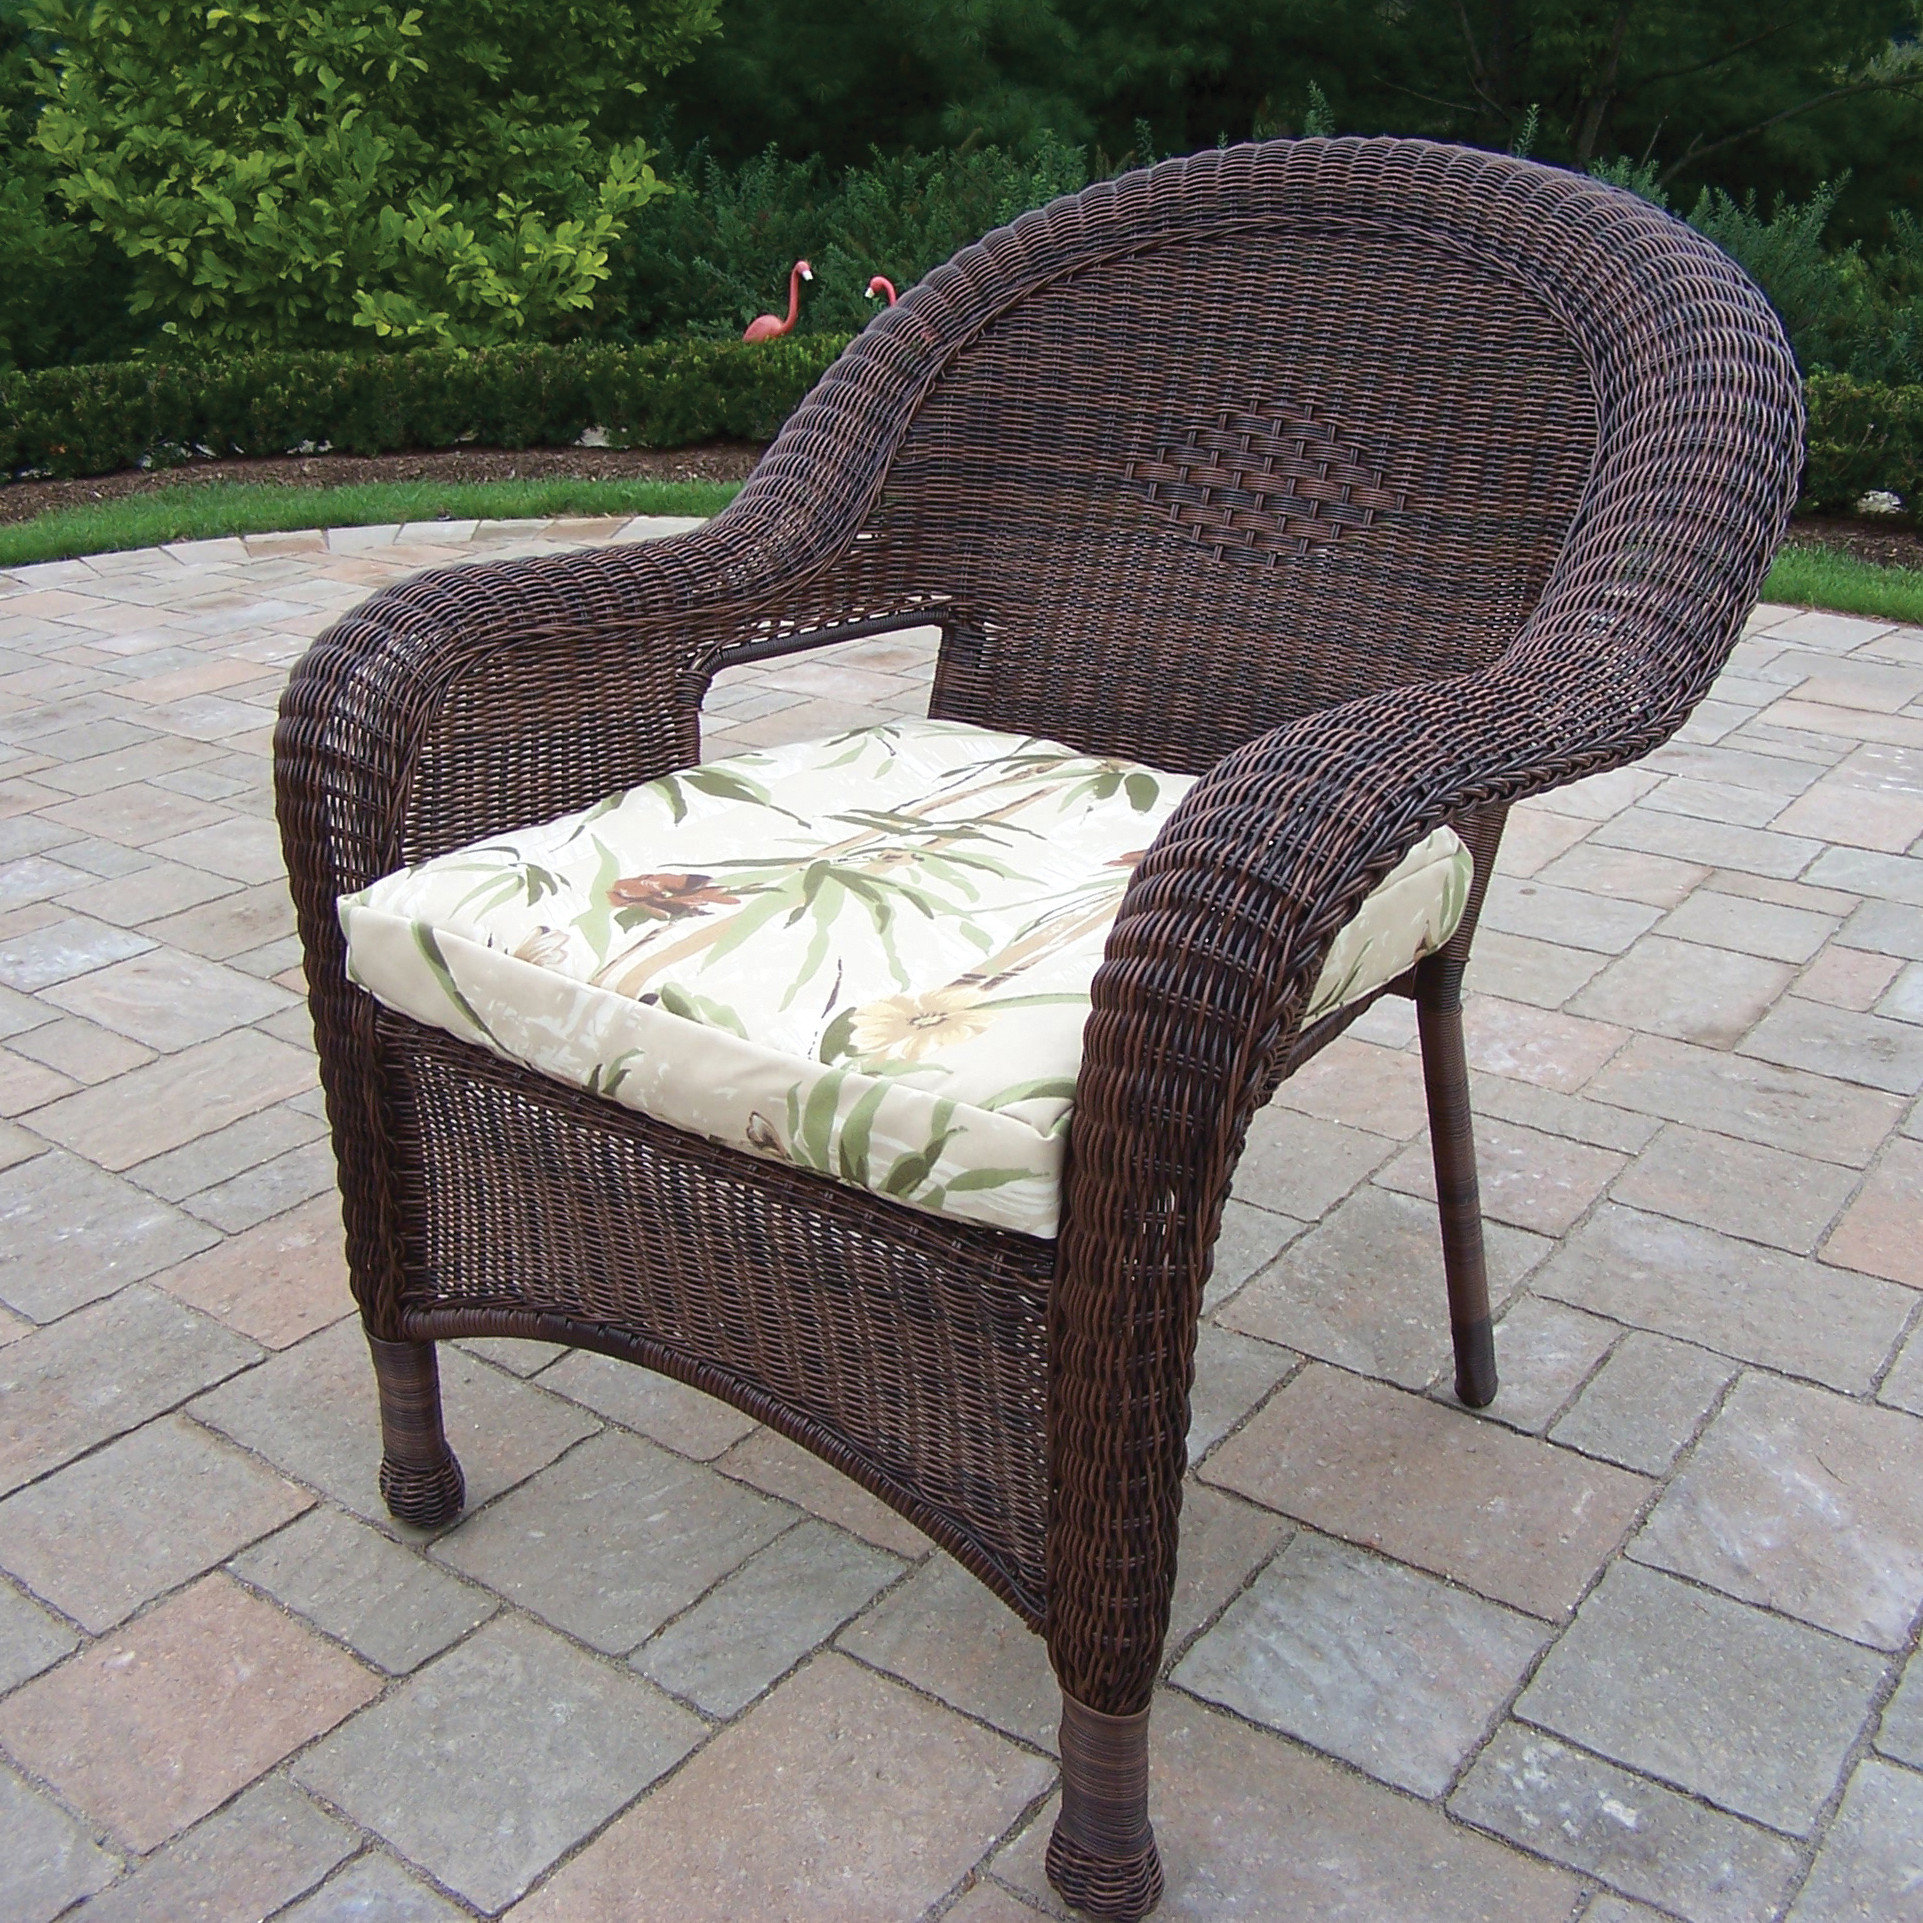 Wicker Patio Chair Outdoor Wicker Furniture For Children Perfect Addition